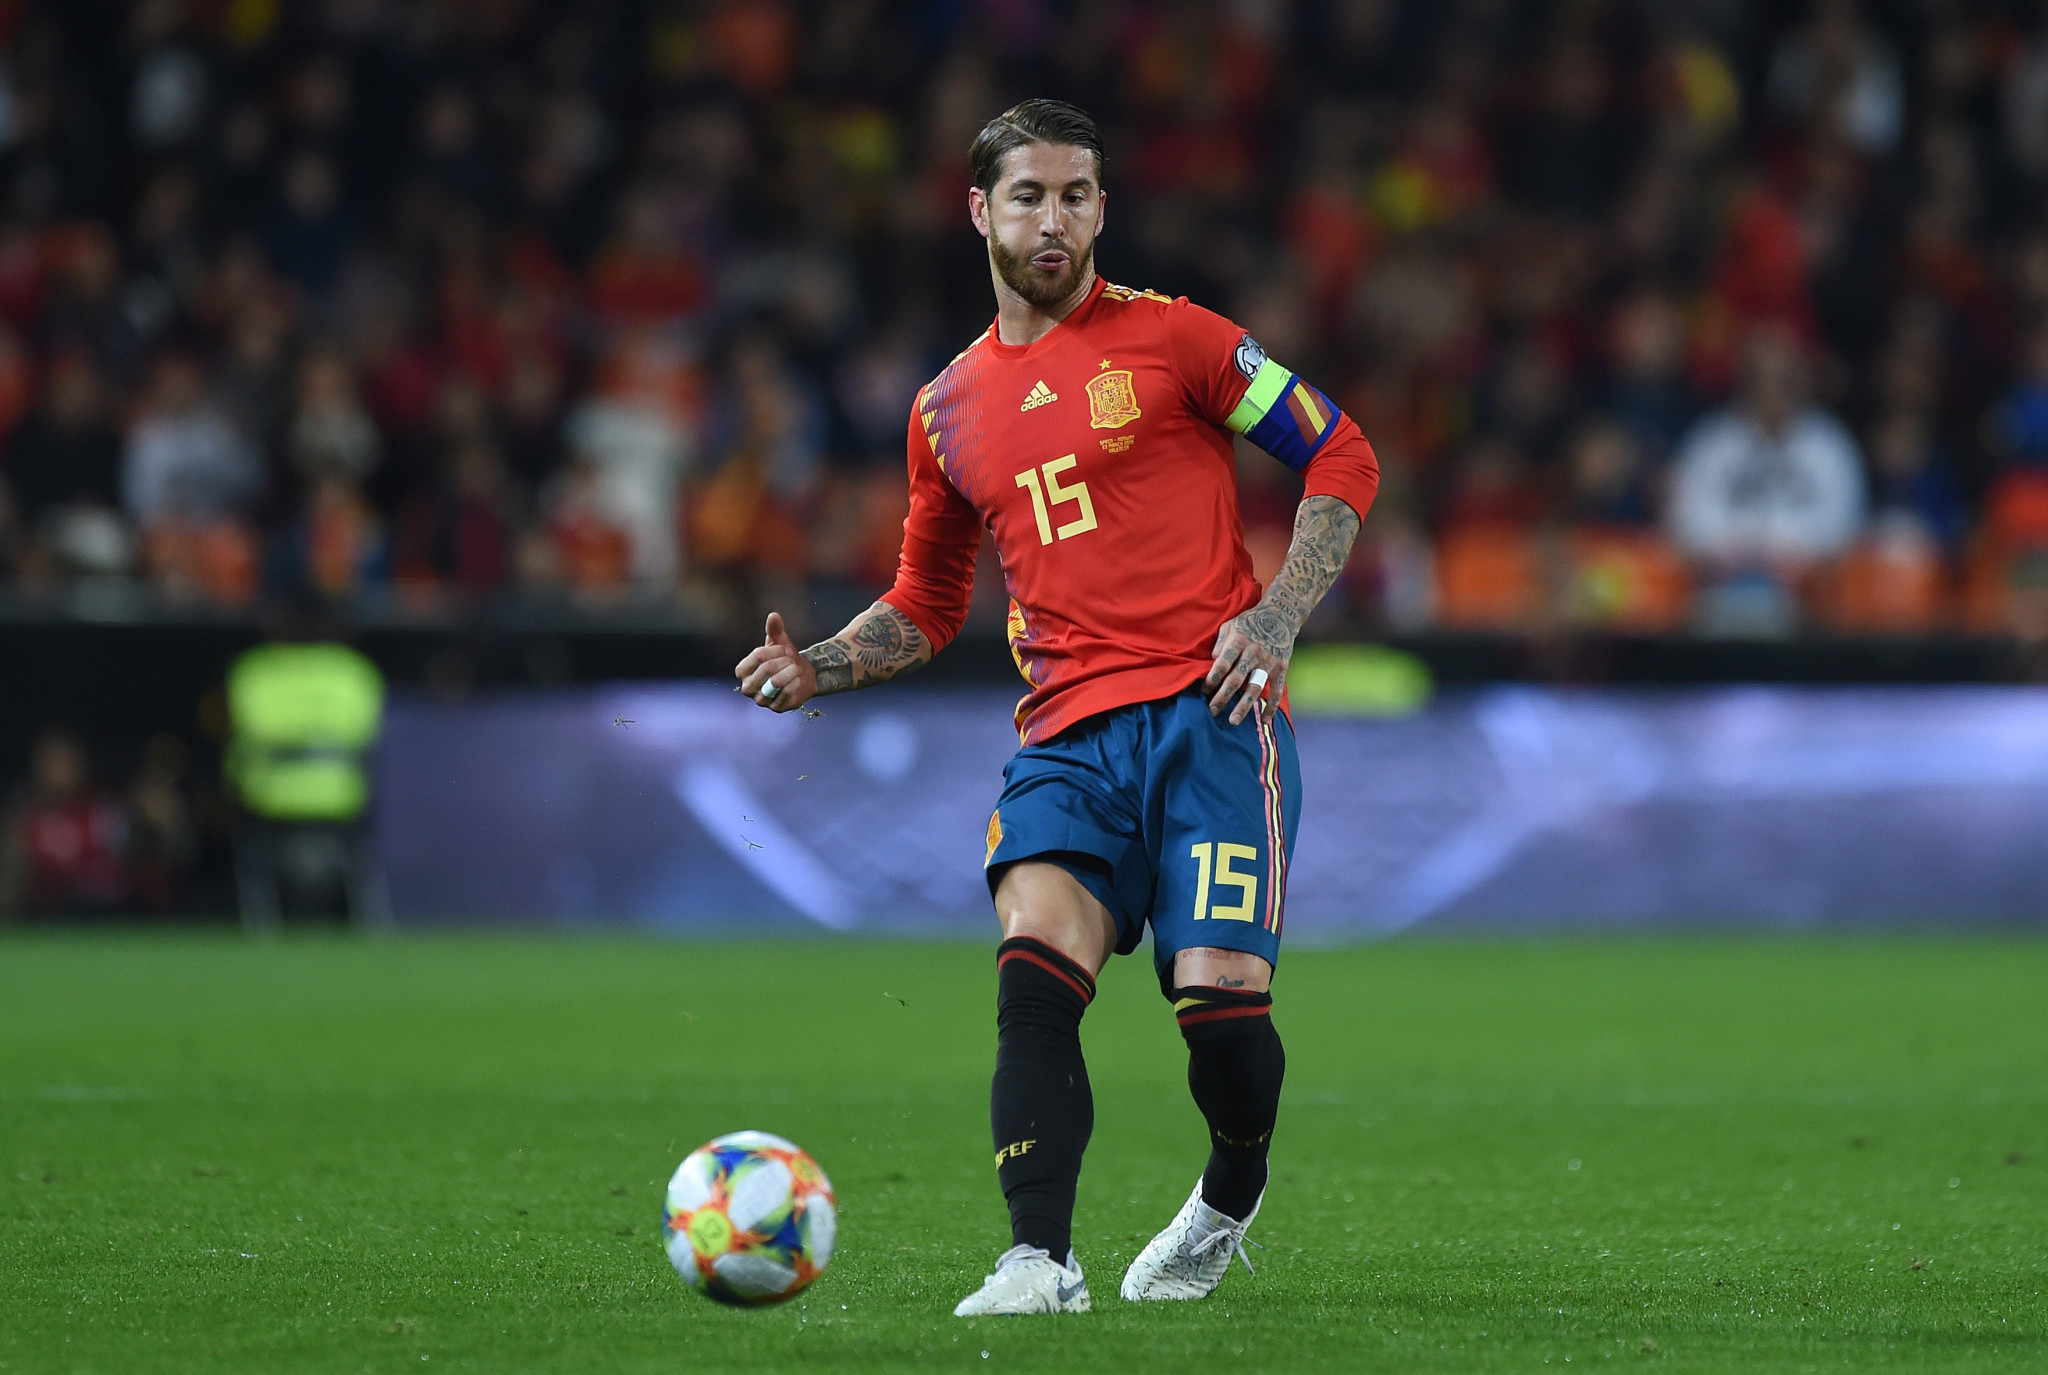 Ramos hints at wish to represent Spain in Olympic football event at Tokyo 2020